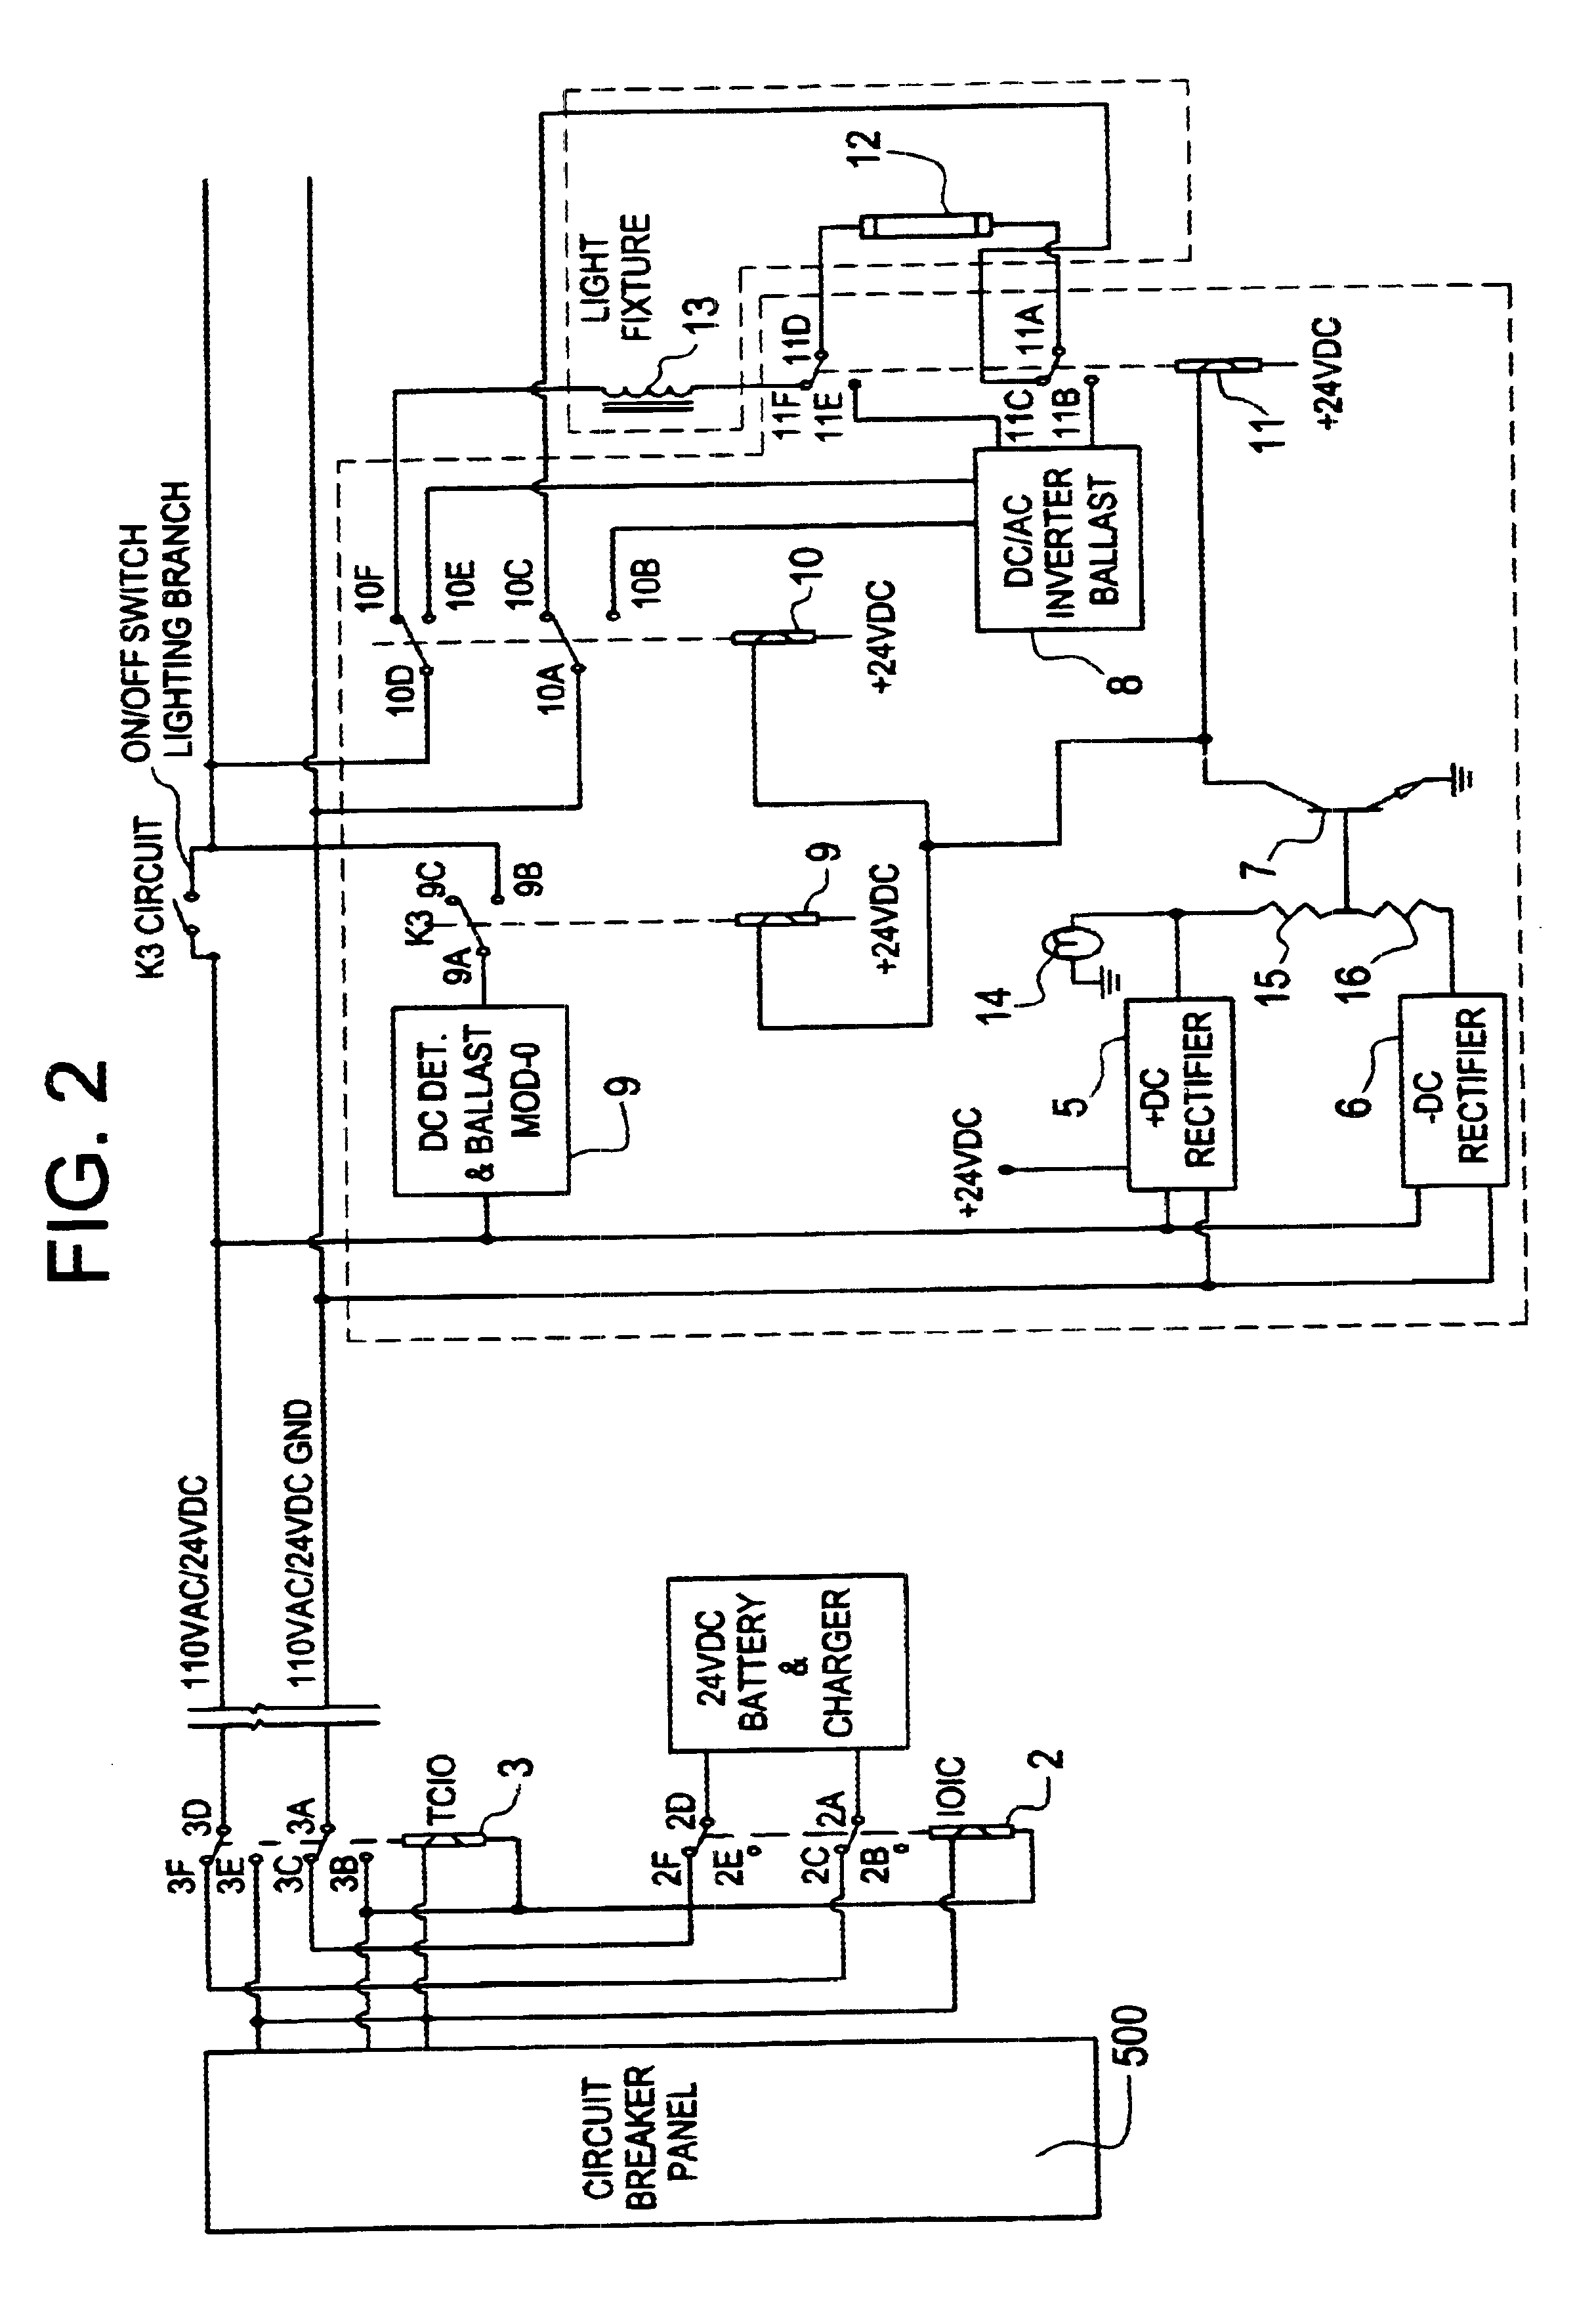 patent us6628083 - central battery emergency lighting system